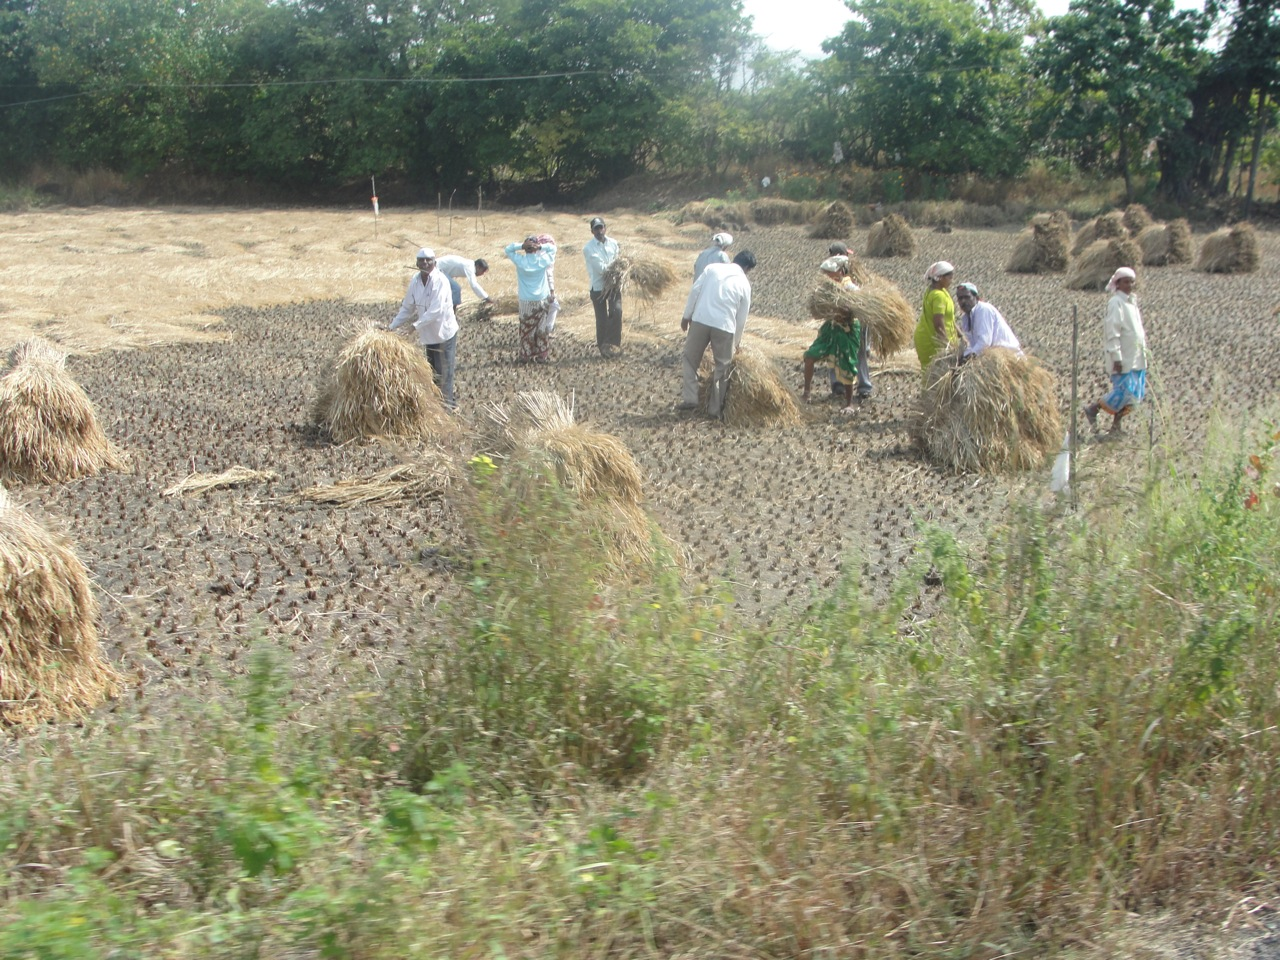 Workers in India harvesting rice